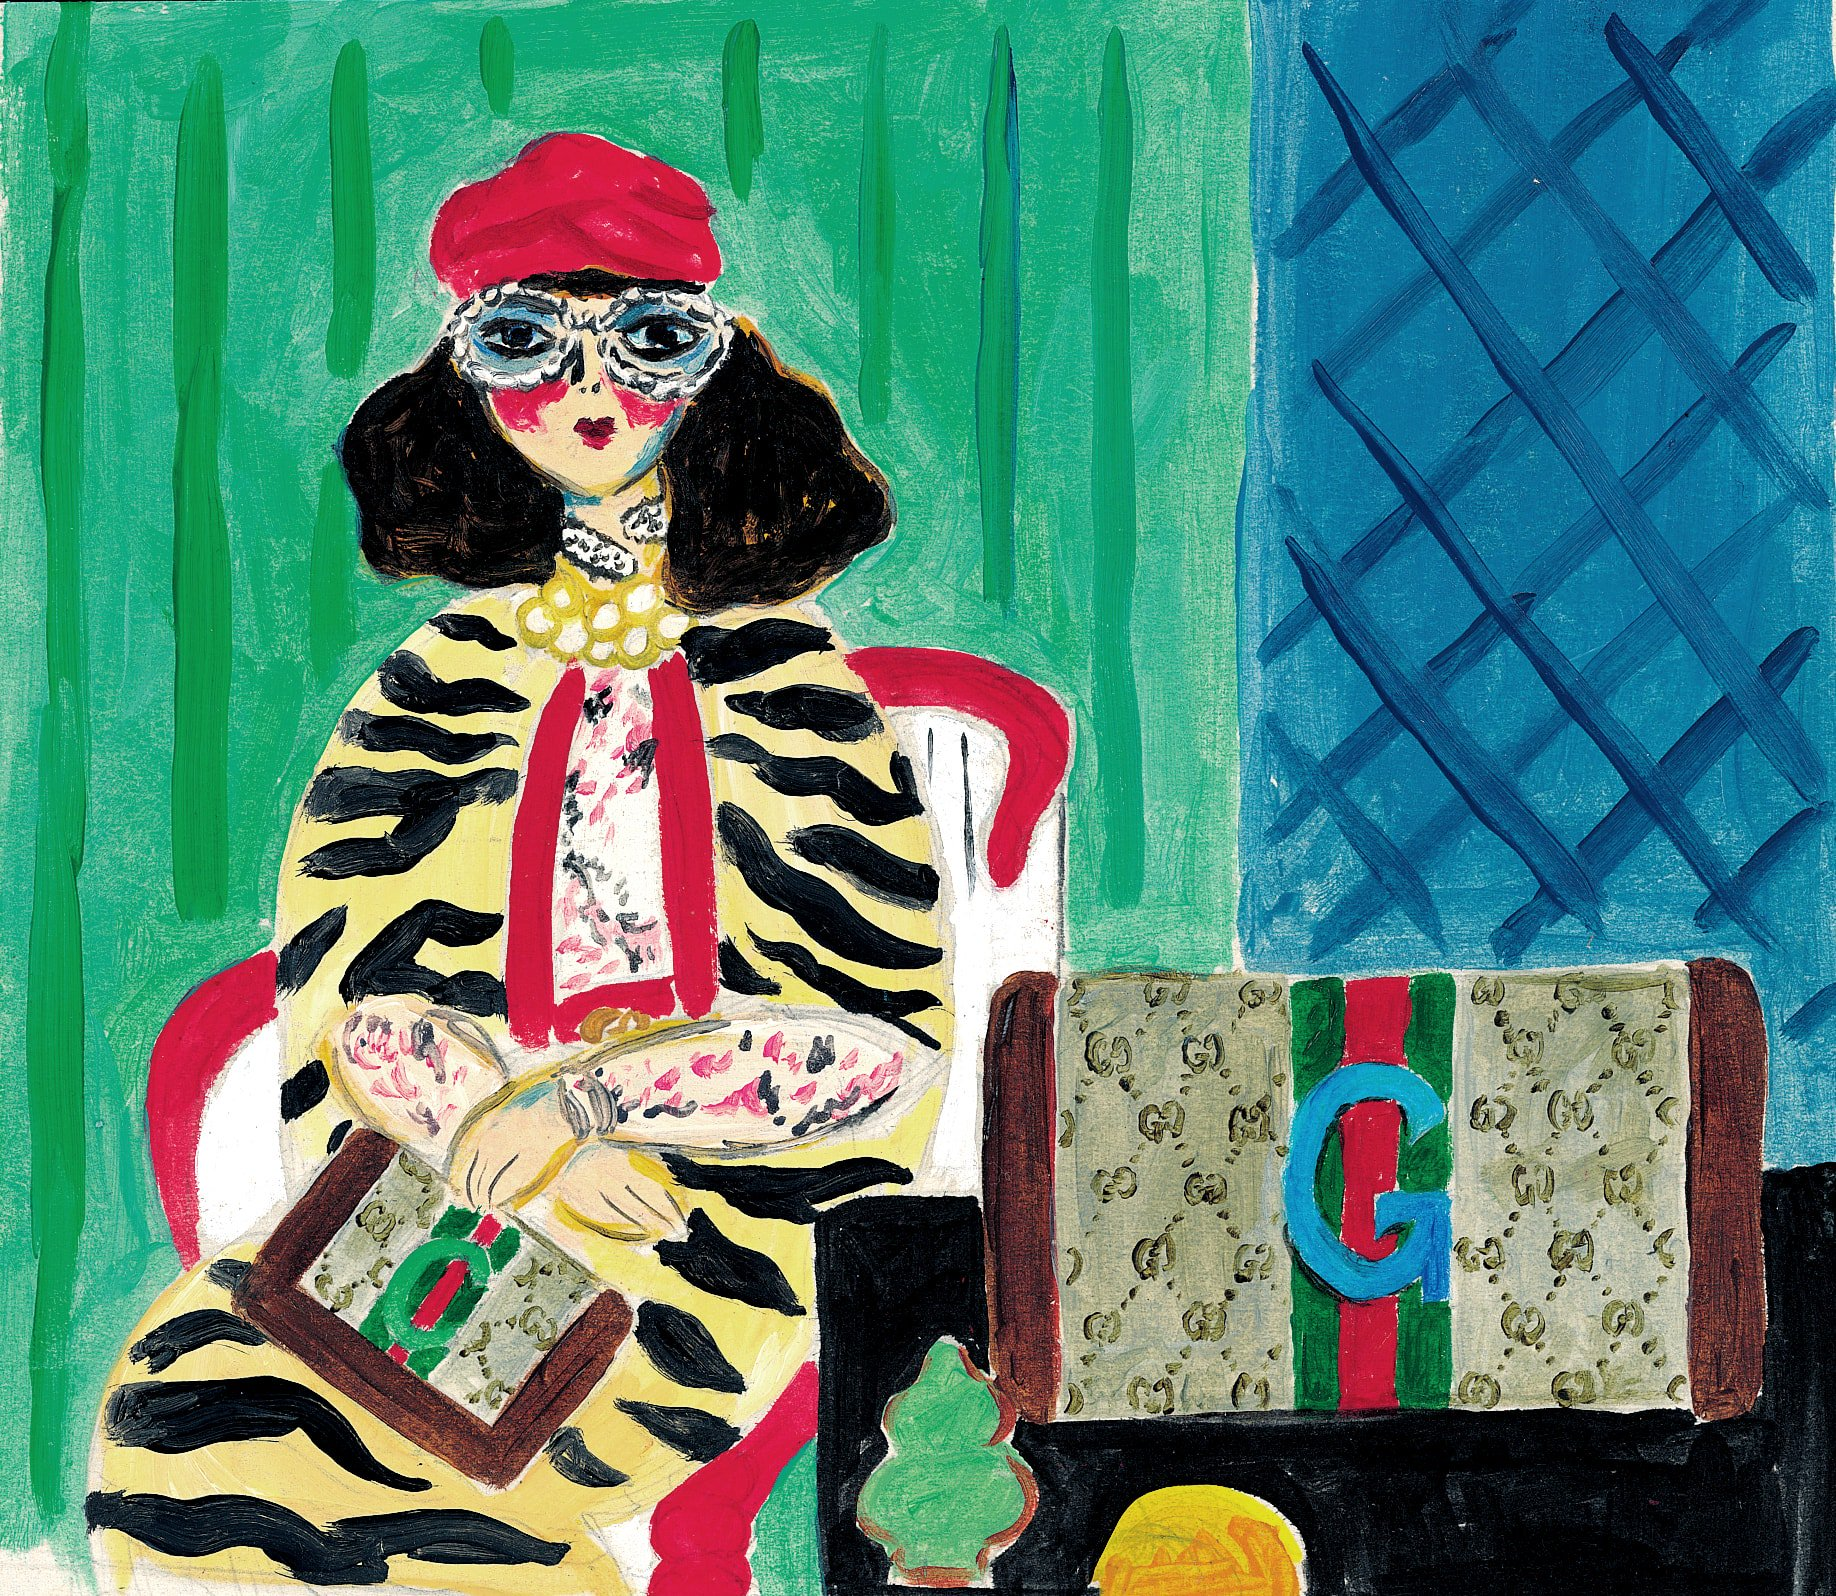 From hand-drawn doodles to color-drenched acrylics on paper and digital drawn scenes, six artists captured the new customizable pieces from #GucciDIY. Inspired by fauvism art, #GwangRyeolChoi 's artworks feature the #GucciOphidia wallets. #AlessandroMichele https://t.co/HokqhDVcQk